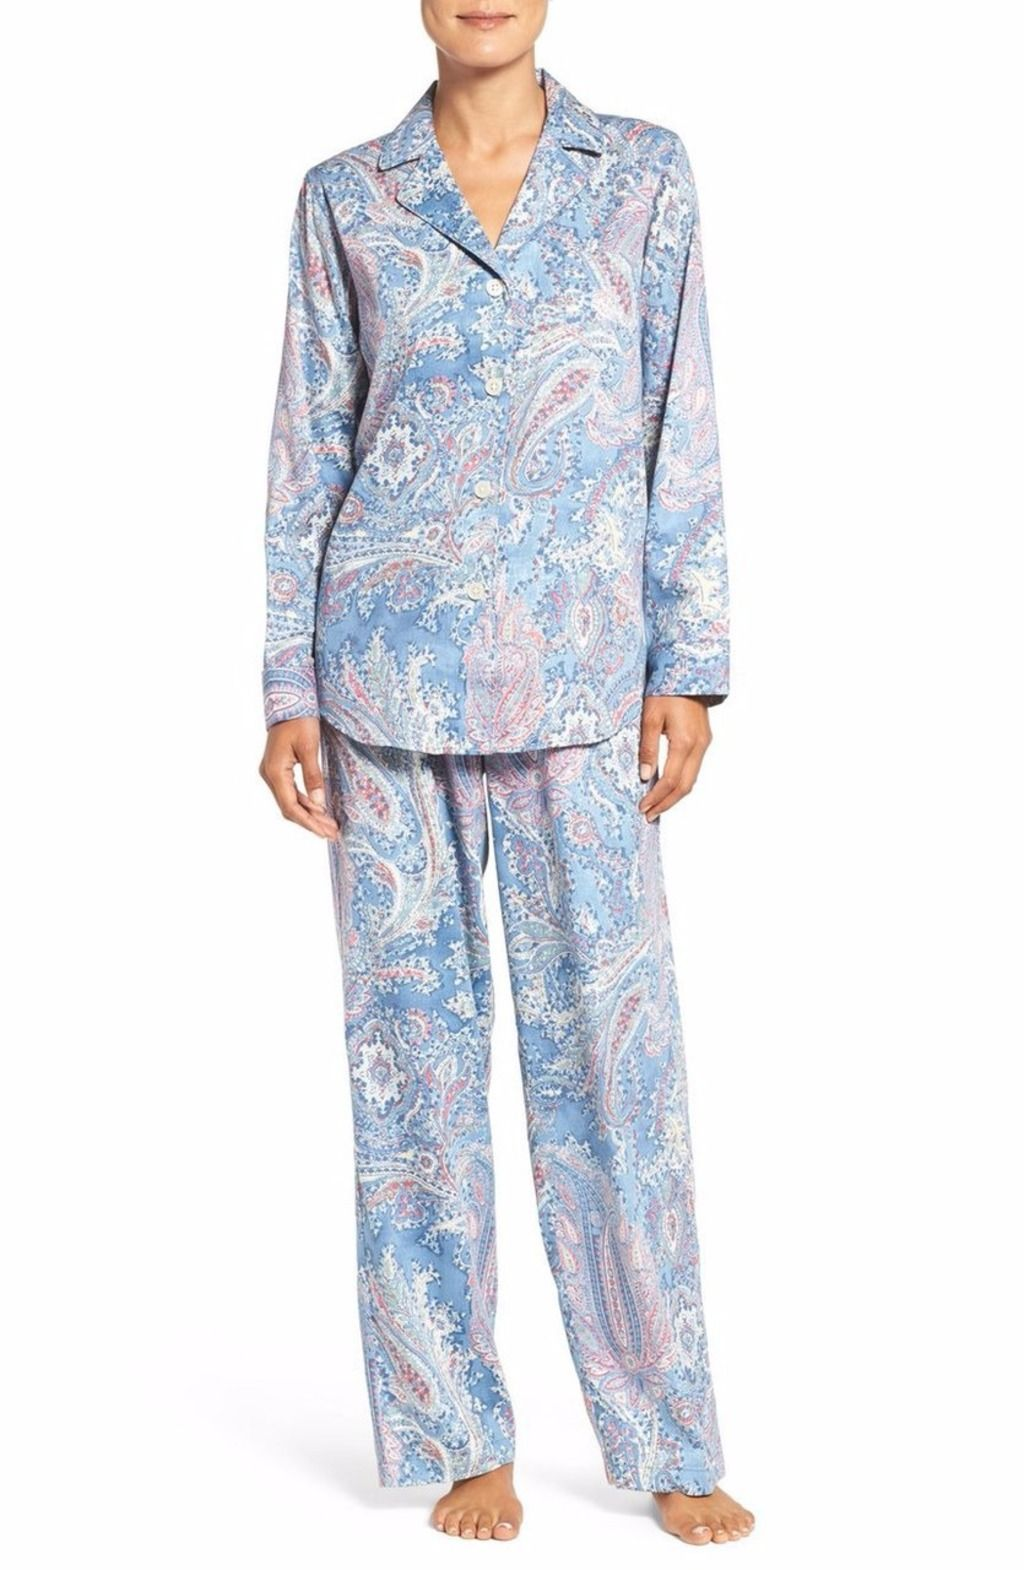 ac0d53029a LAUREN RALPH LAUREN PRINT PAJAMAS BLUE PAISLEY  59 - PICK UP OR SHIPS FREE  WORLDWIDE! BET PRICE GUARANTEE - MAJOR CREDIT CARDS ACCEPTED - SHOP OUR SSL  ...